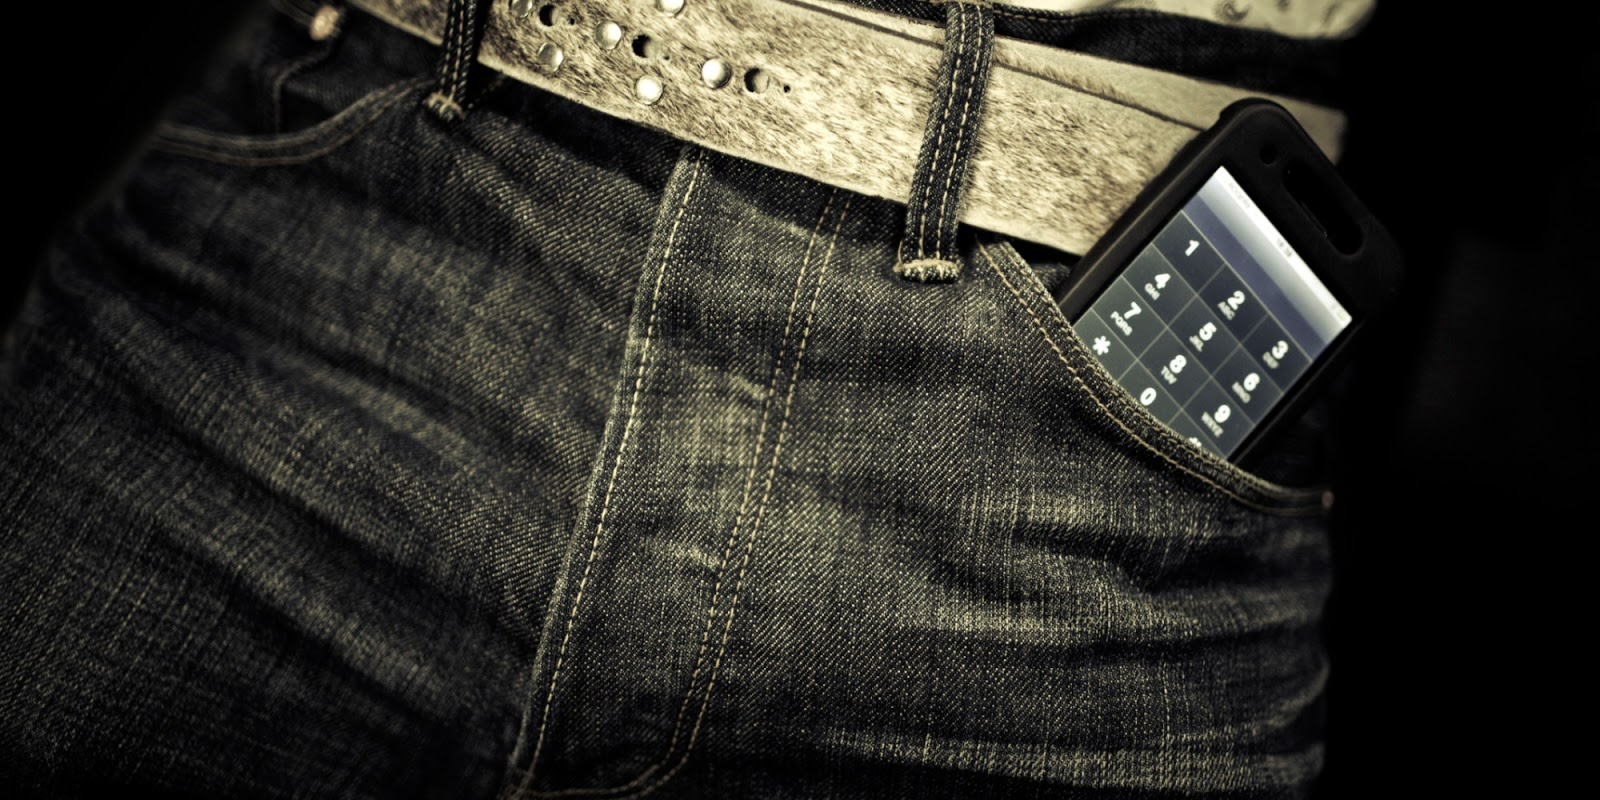 Why men shouldn't put their phones inside their pockets?